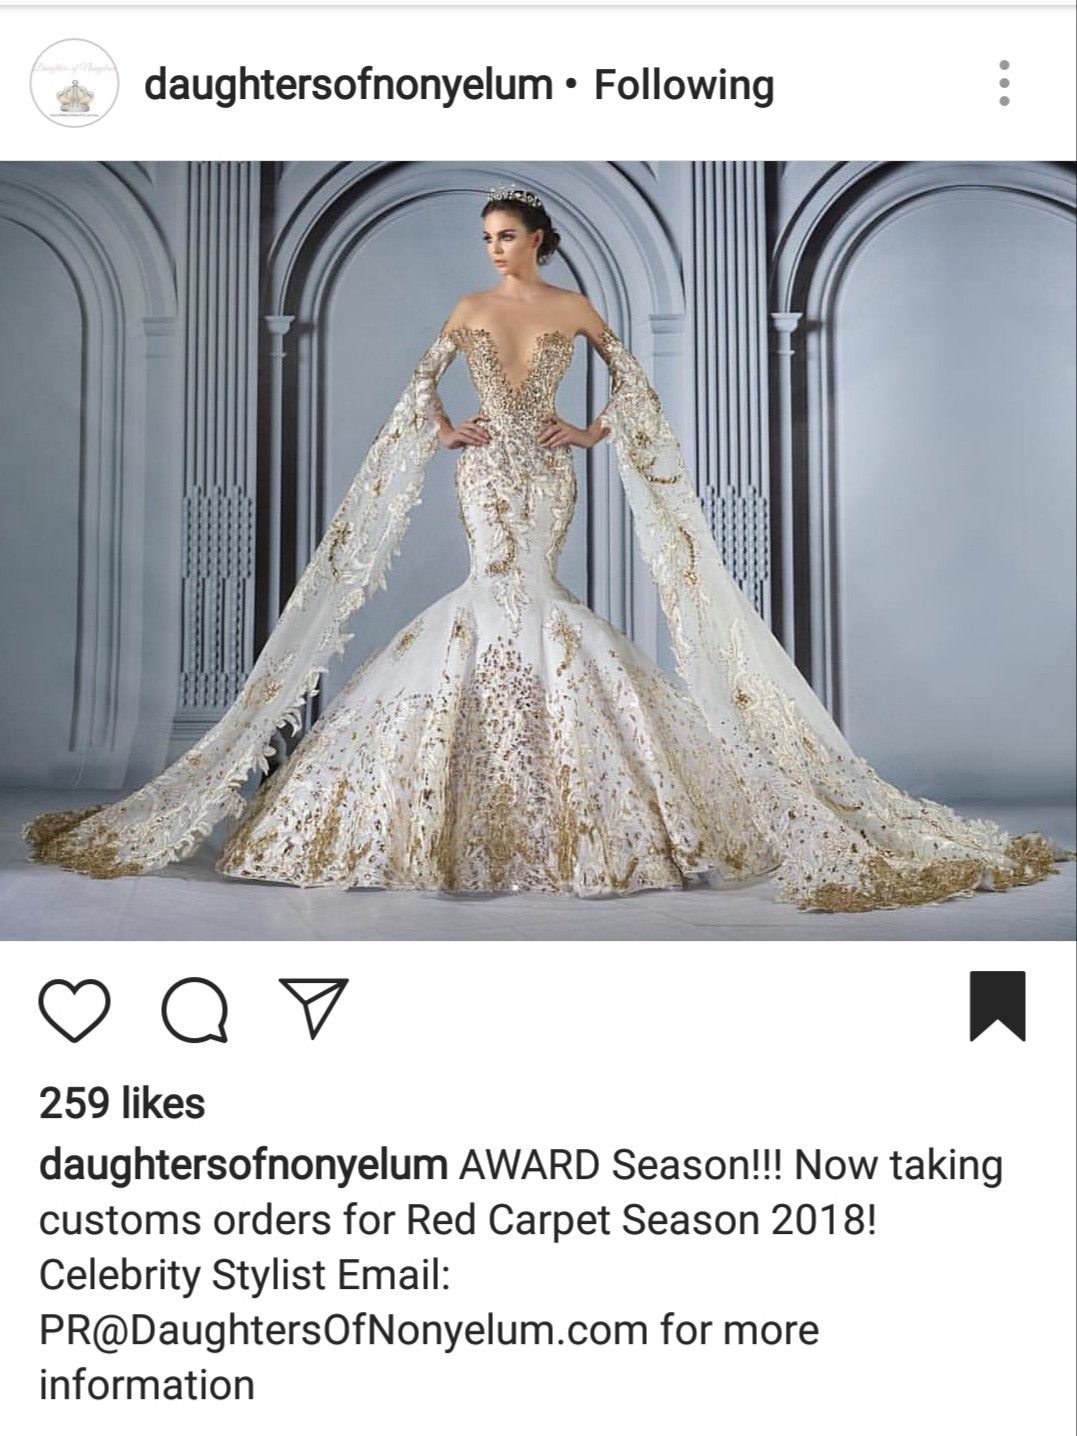 Daughters Of Nonyelum White And Gold Wedding Mermaid Style Wedding Gown Glamourous Wedding Dress Wedding Dress Couture Wedding Dresses